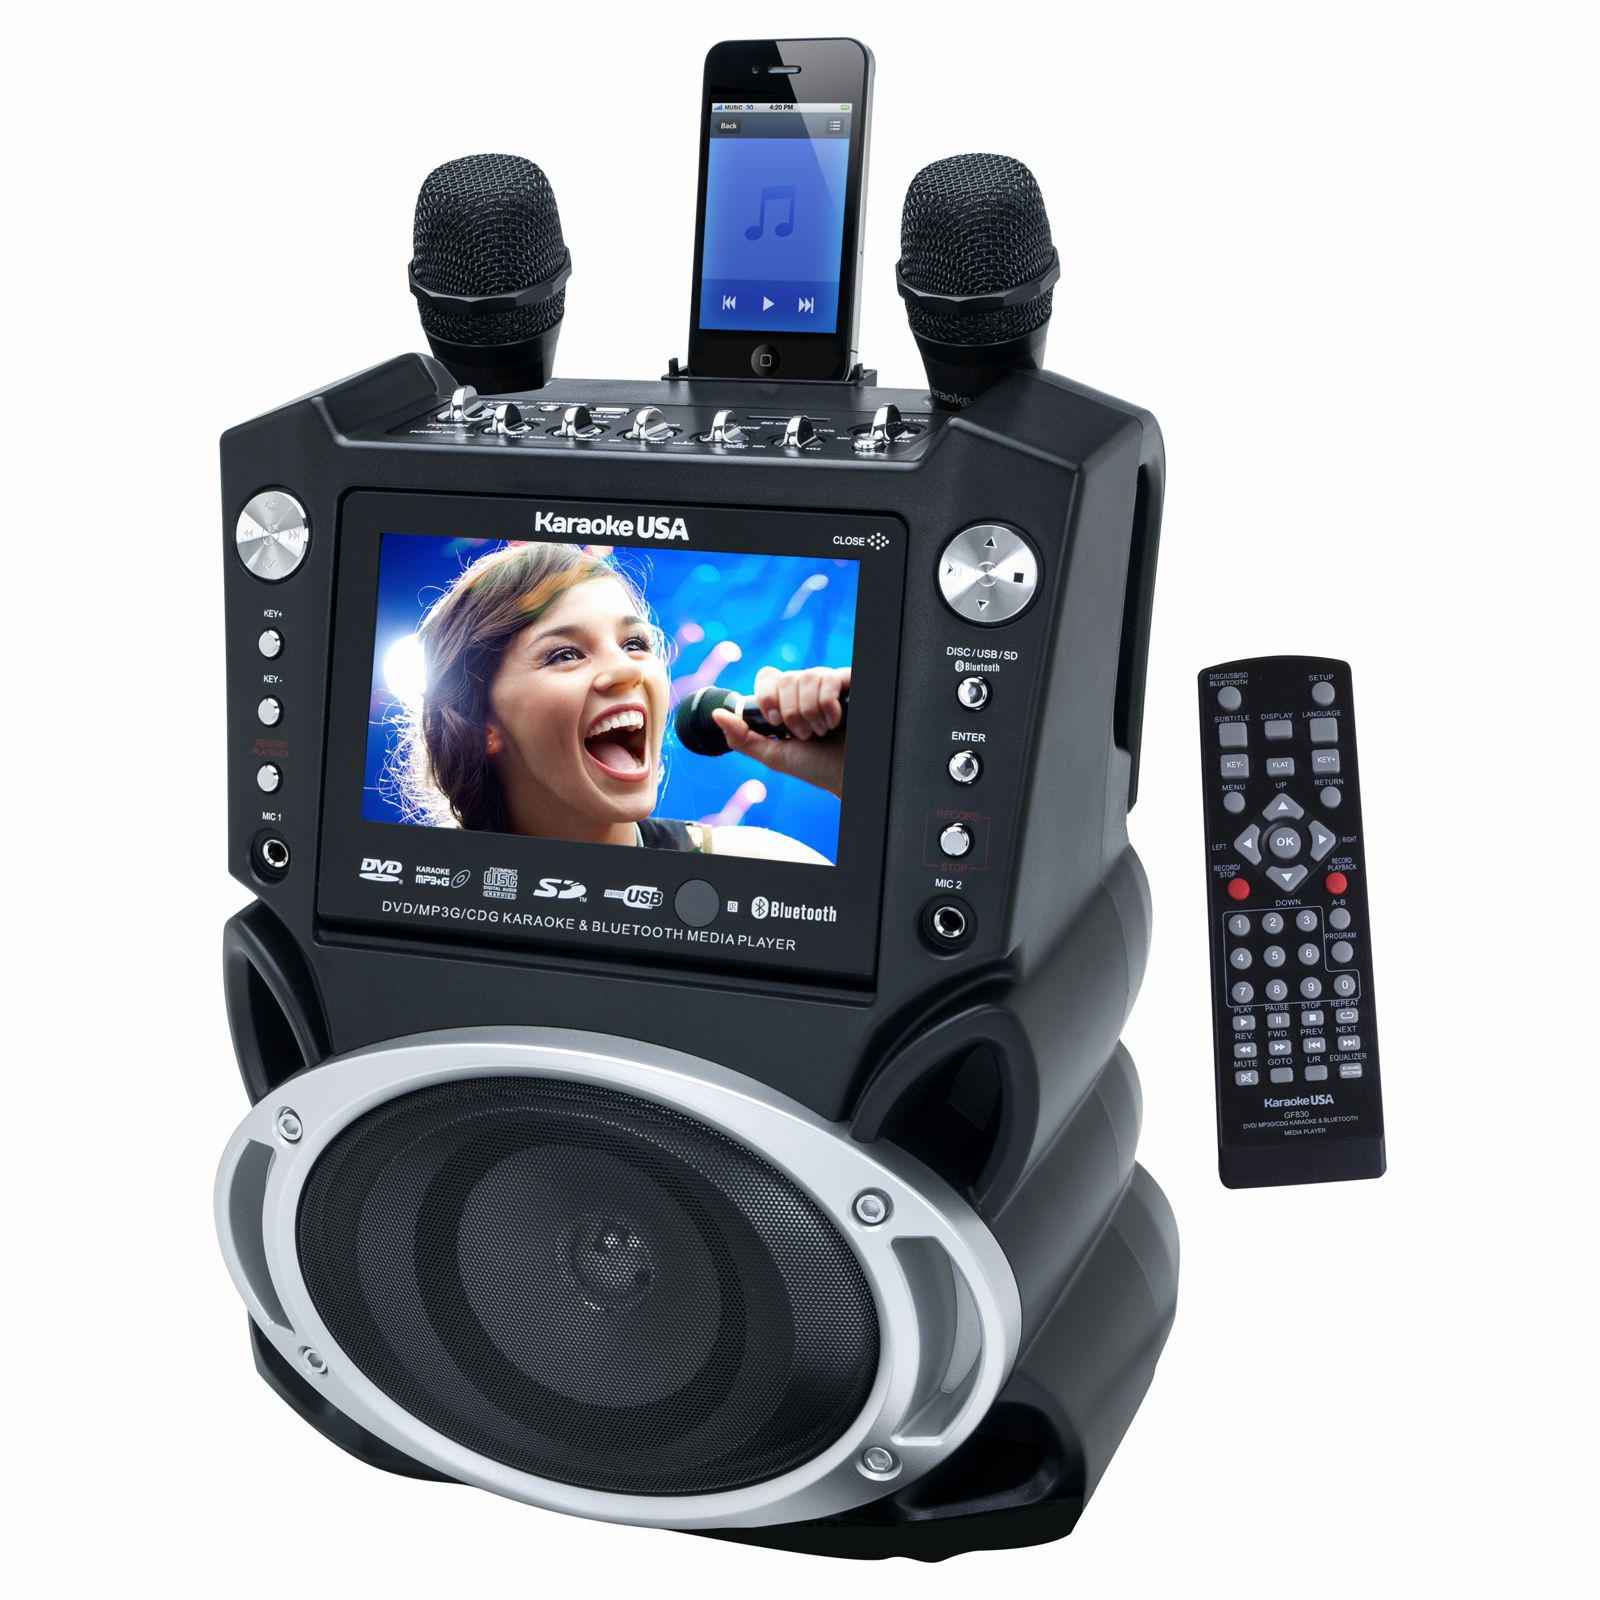 GF830 - DVD/CDG/MP3G Karaoke System with 7